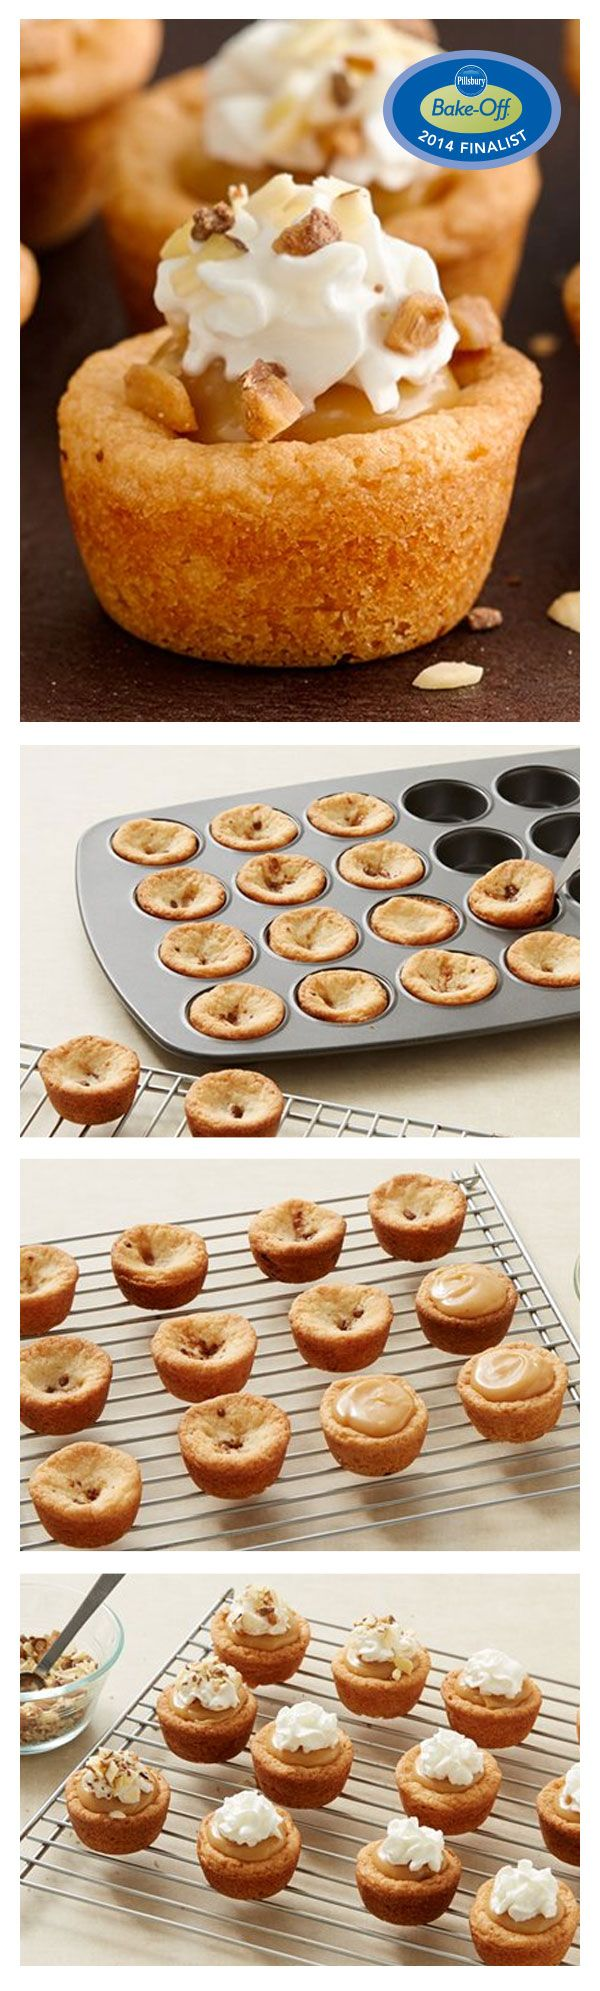 47th Bake-Off Contest Finalist: Toffee and Almond Fudge Cookie Cups by Amy Andrews from Macomb, MI